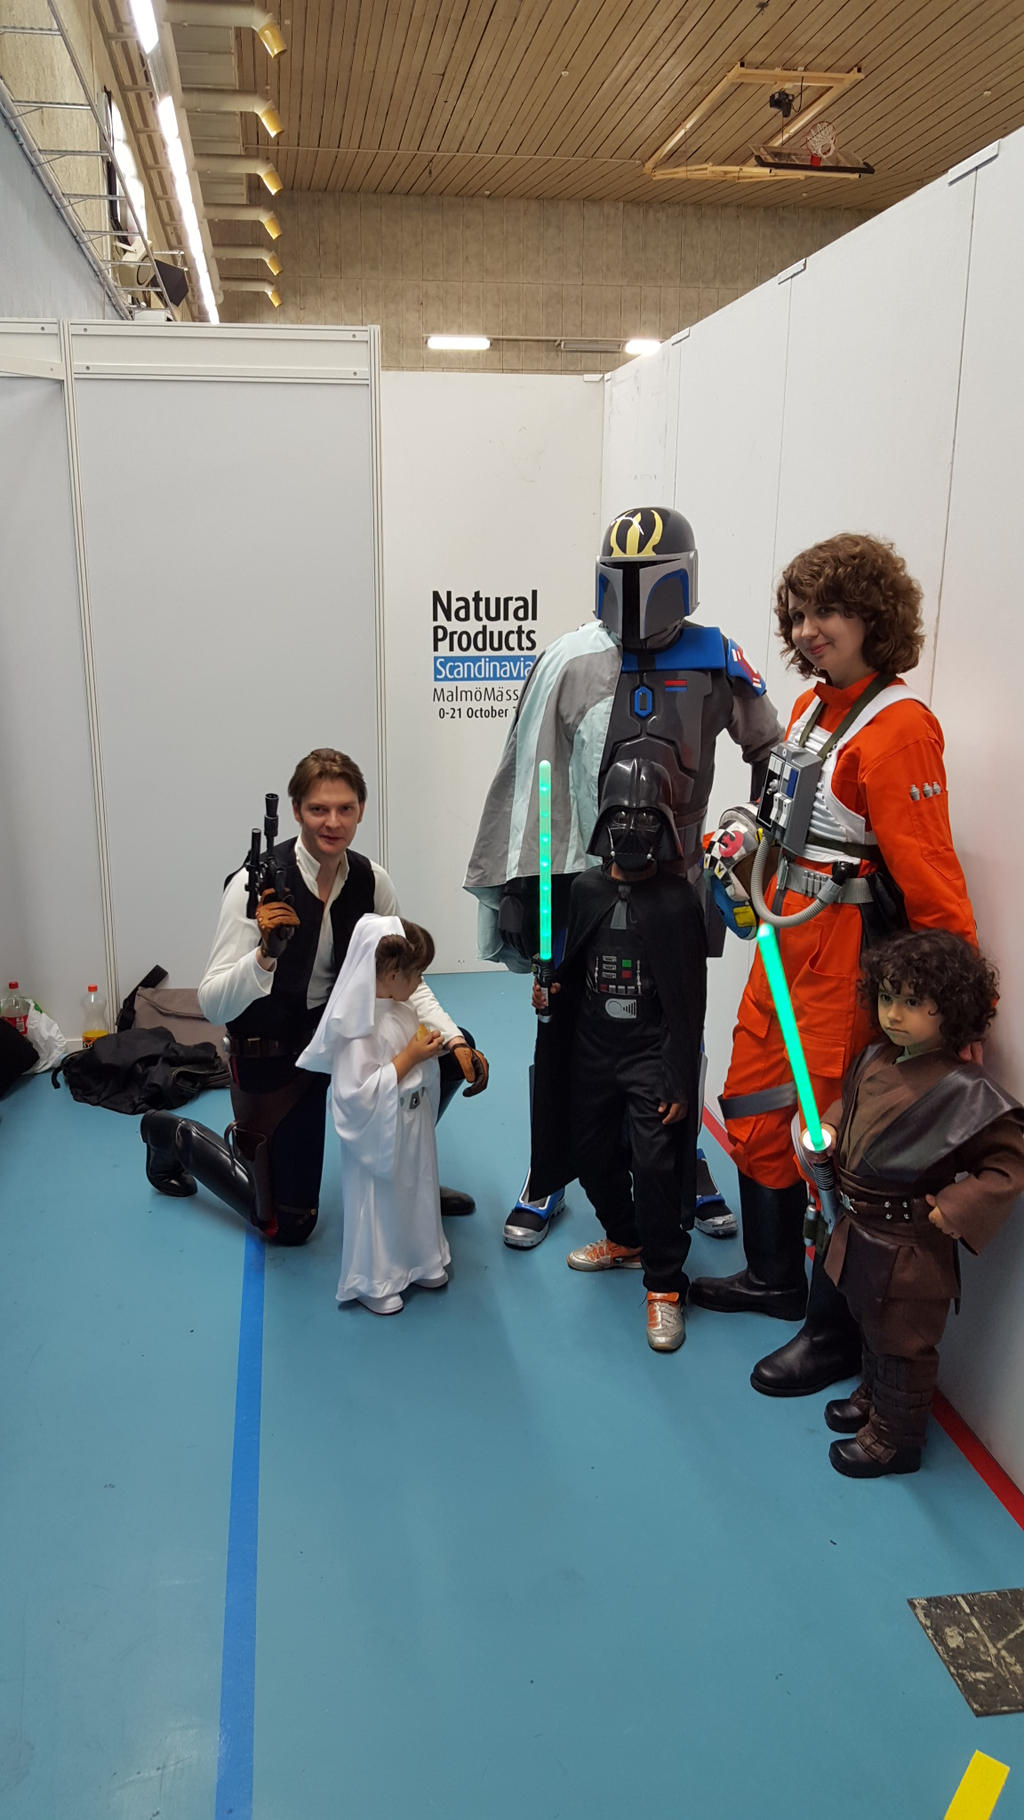 Star Wars cosplay by EgonEagle